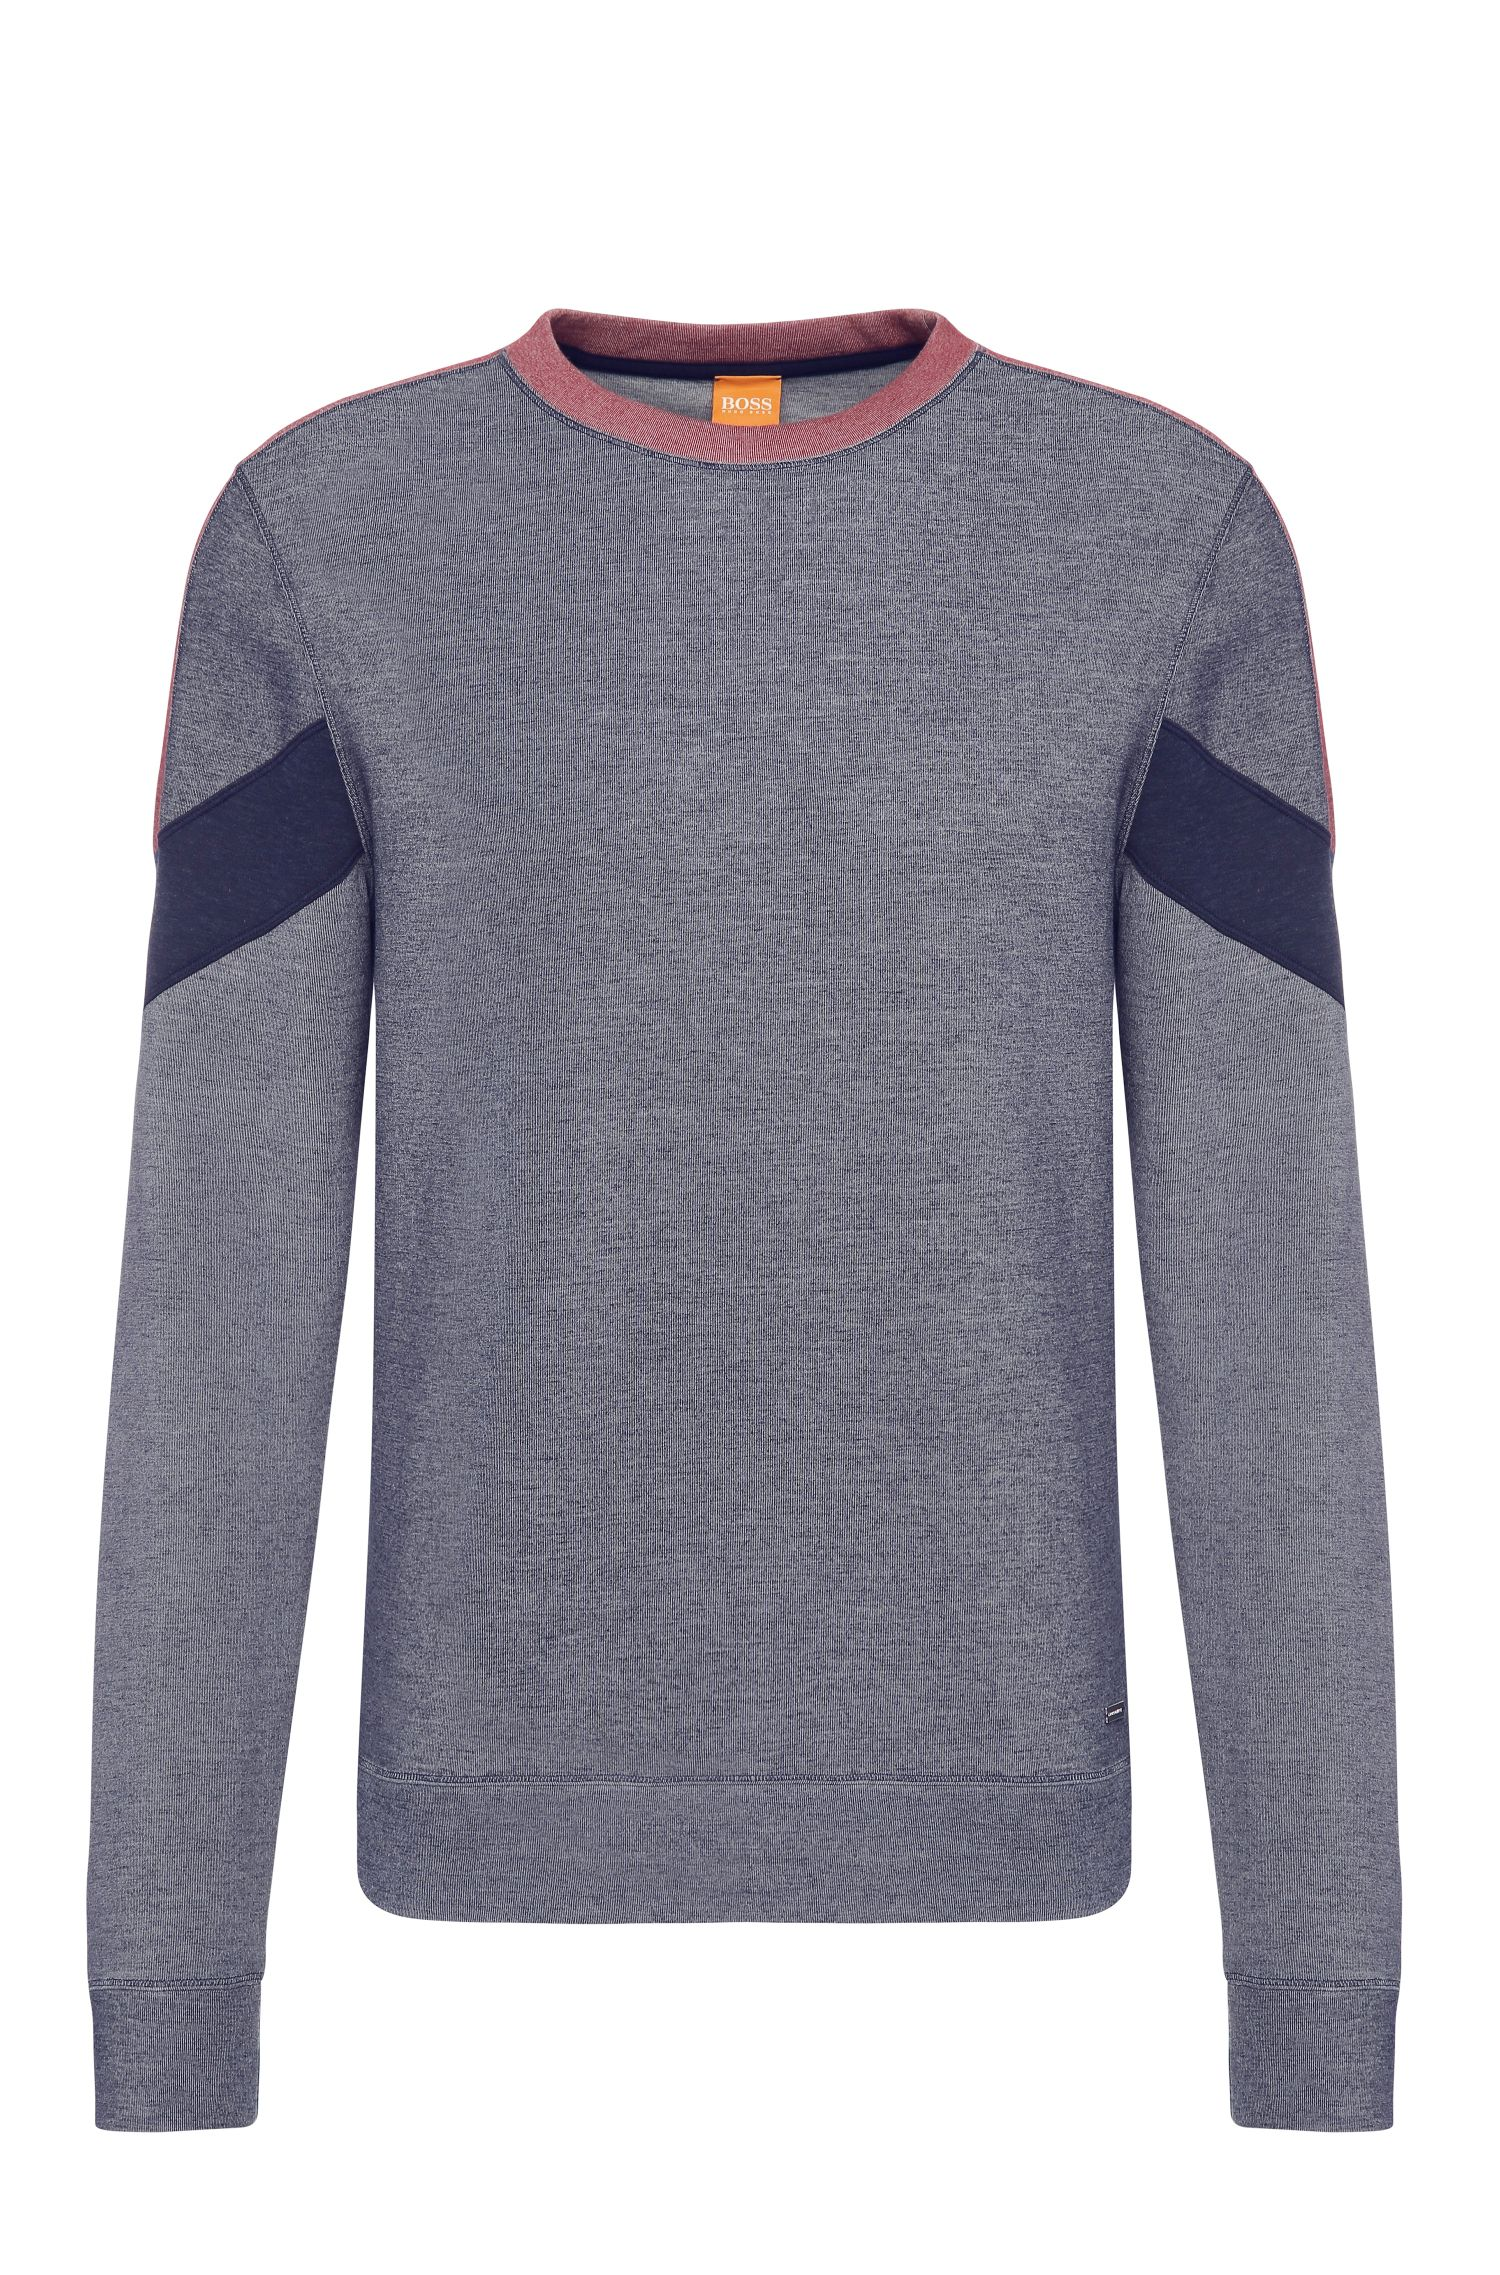 Relaxed-fit sweatshirt in cotton blend: 'Writer'